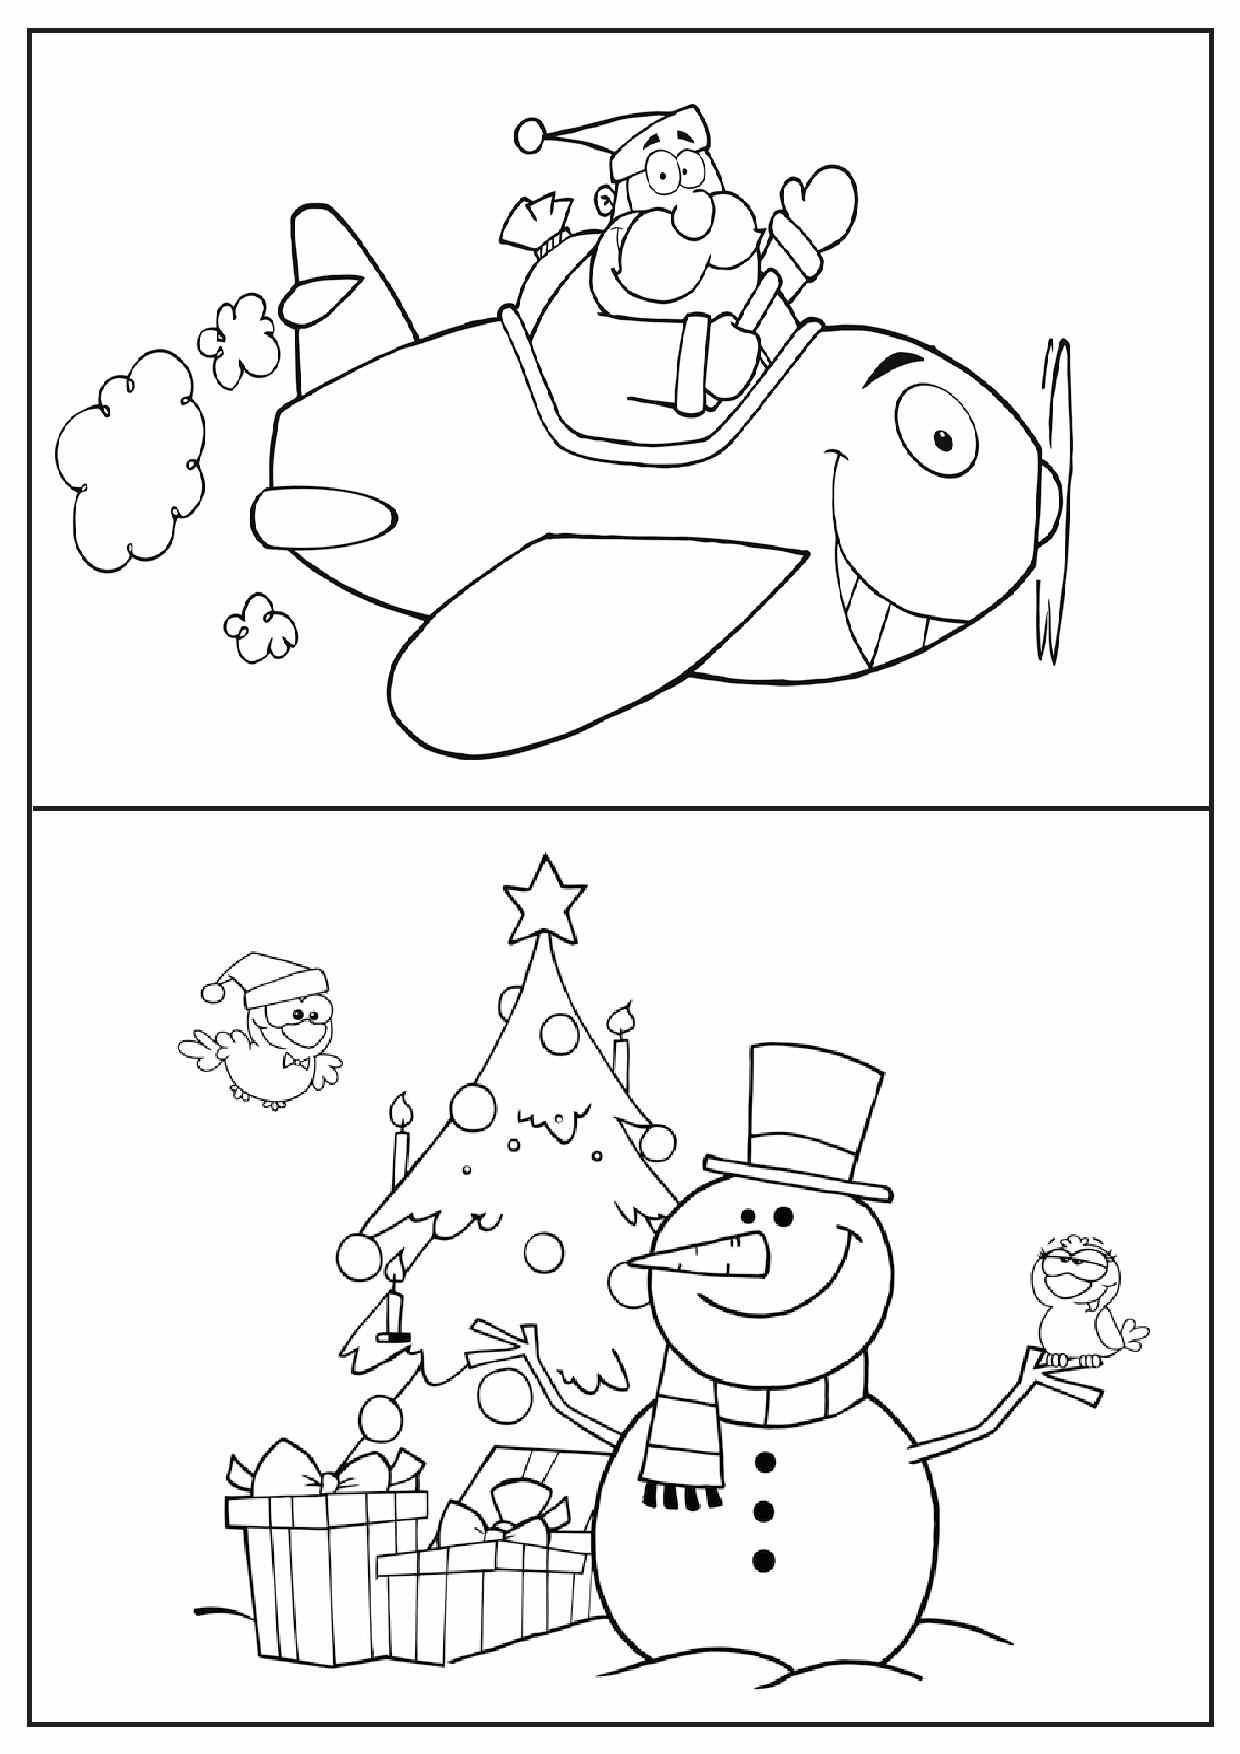 Printable Christmas Activity Pages